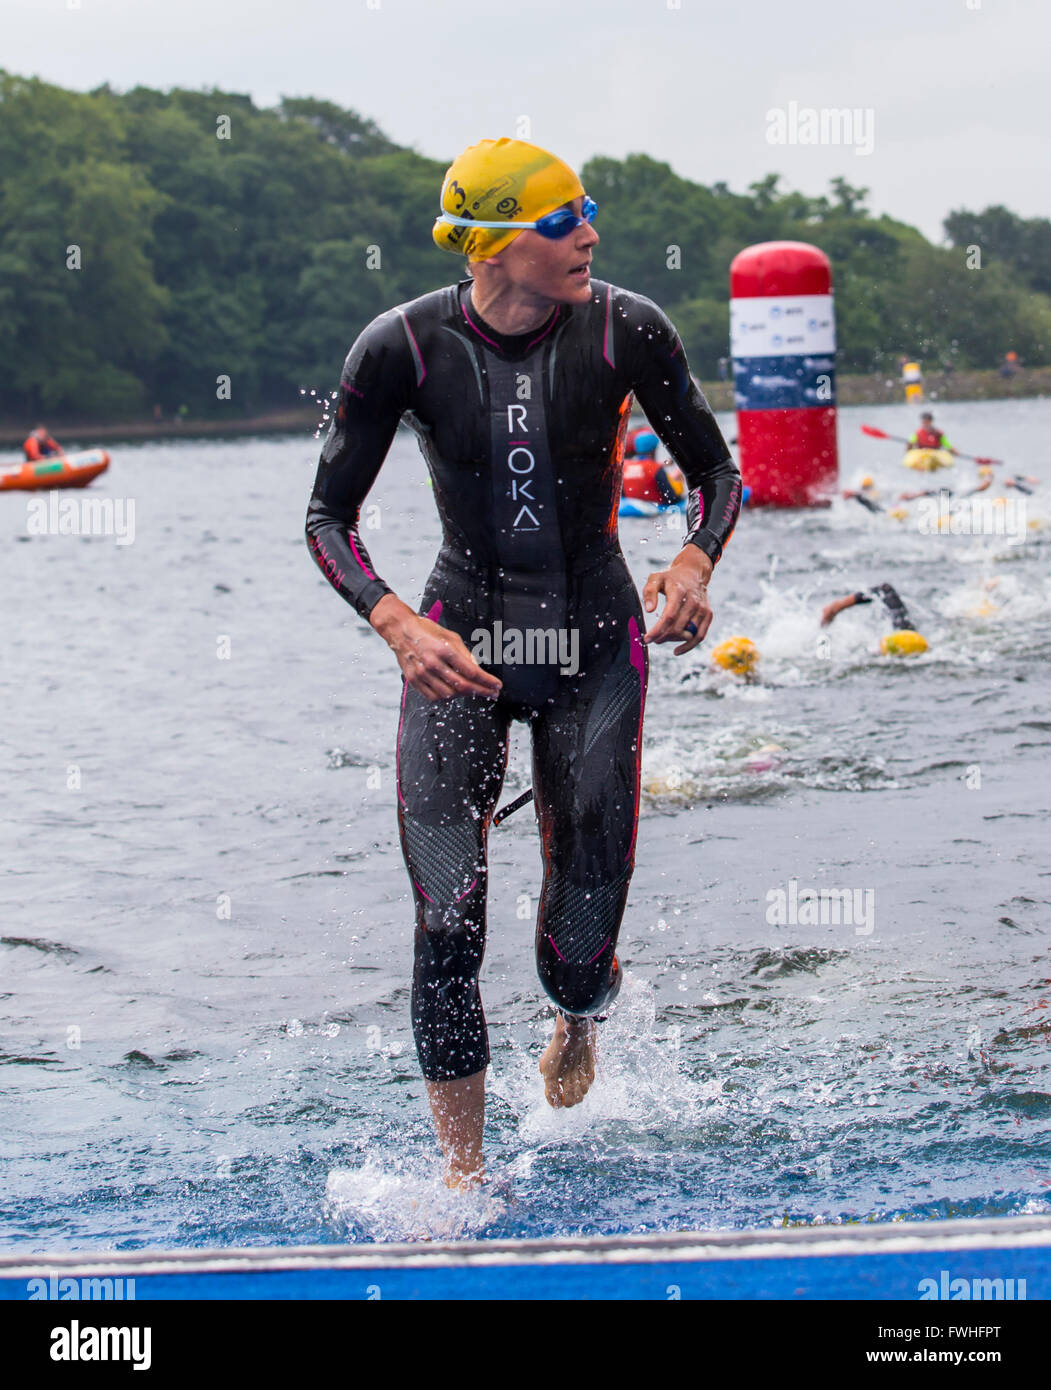 Leeds, UK. 12th June, 2016. Gwen Jorgensen completing the first of 2 laps in the open water swim at Roundhay Park Stock Photo